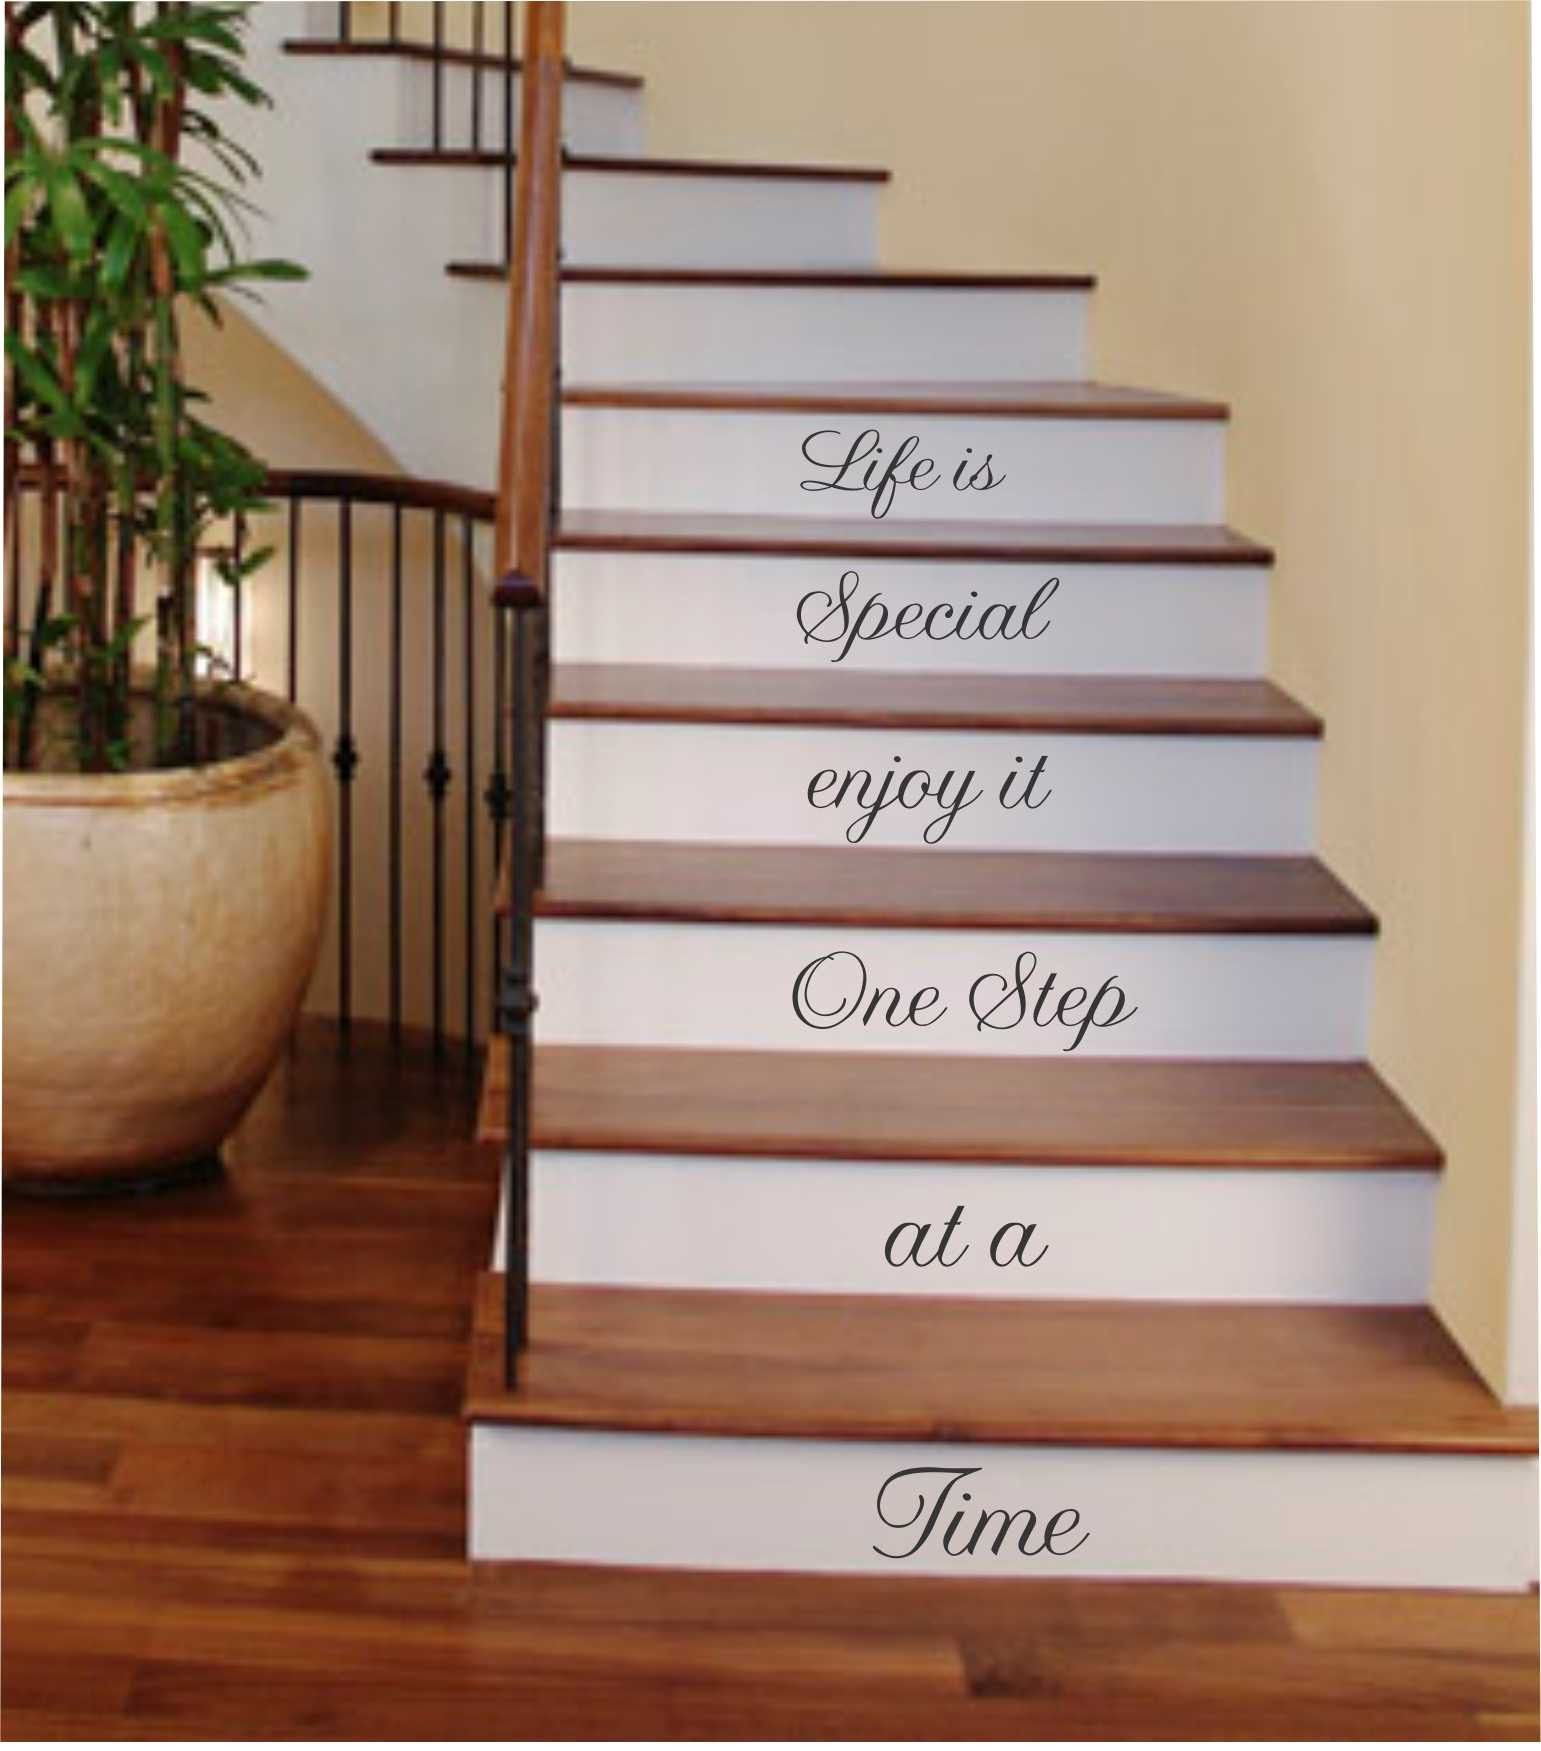 e Step at a Time Vinyl Stairs Decal Lettering for Stairs